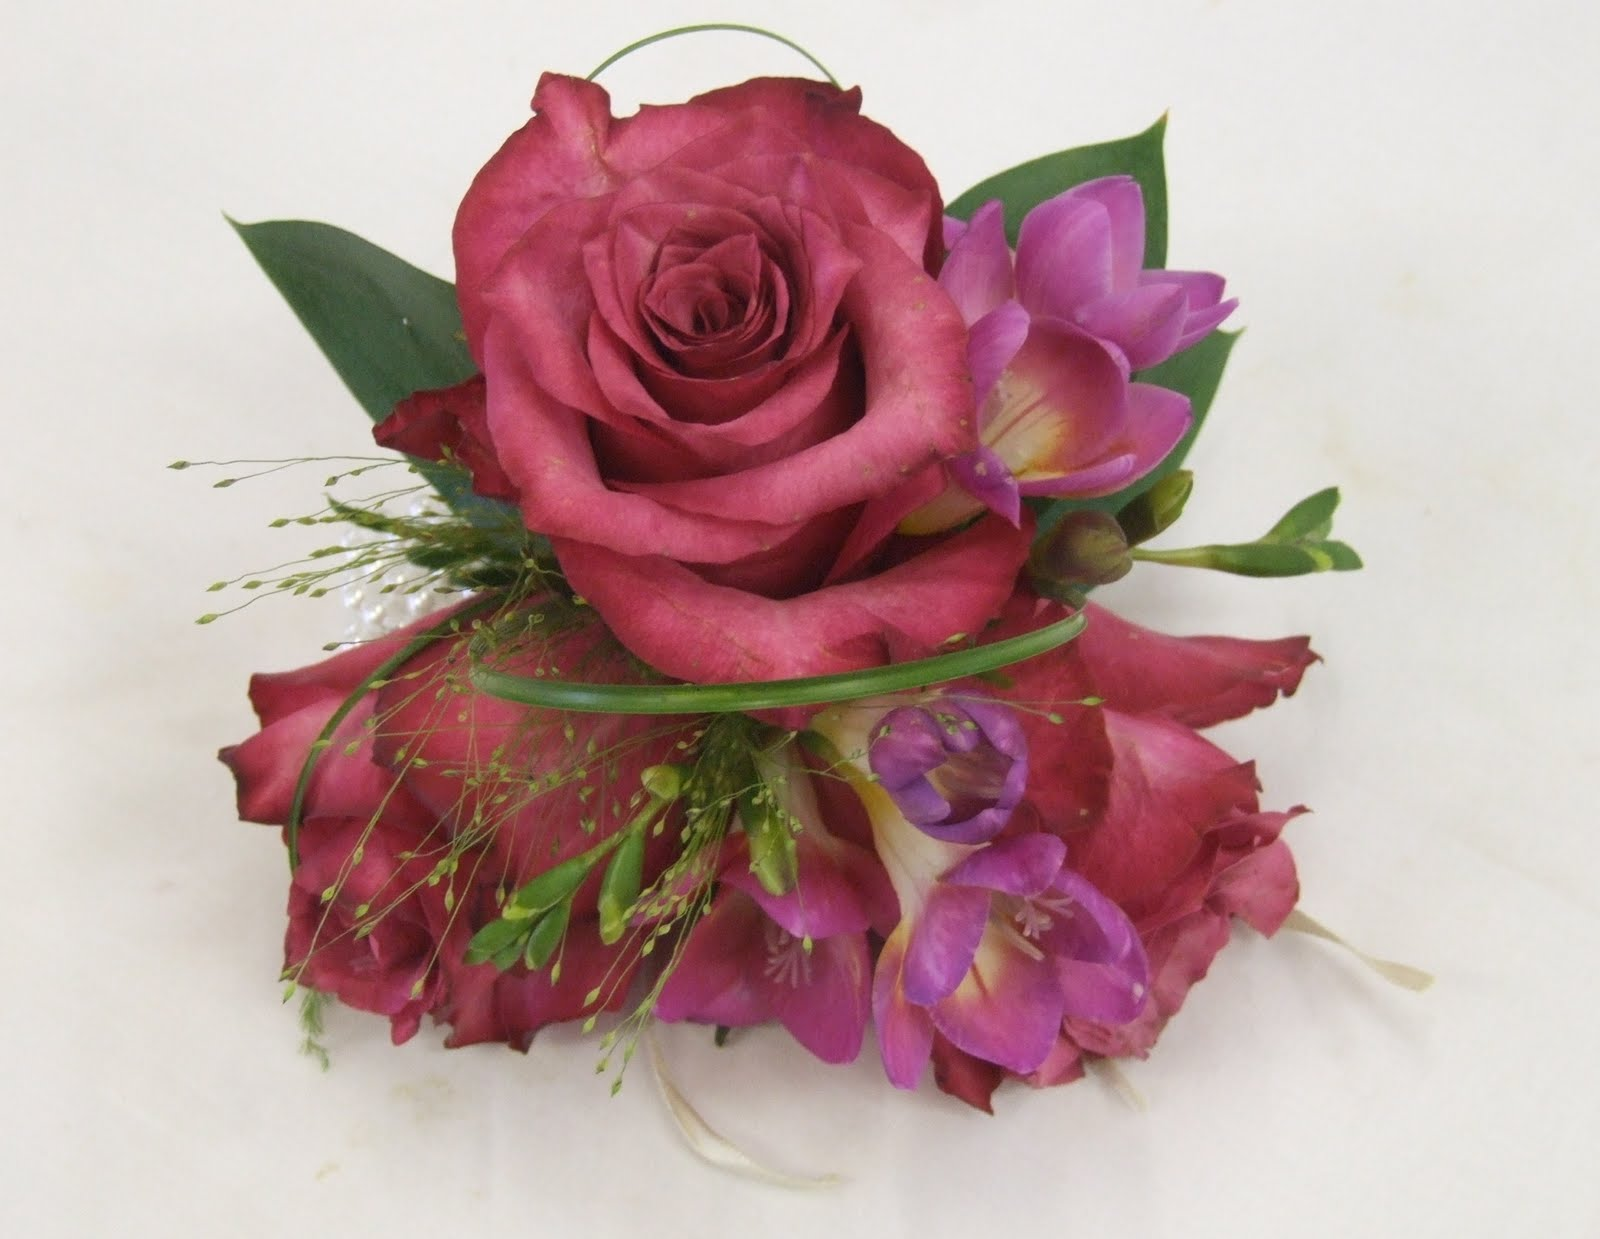 Rjs Florist Pink And White Wedding Flowers Wrist Bear The 3 Adult Bridesmaids Each Wore A Corsage Of Dark Roses Freesia With Fountain Grass Ruscus Leaves Loops